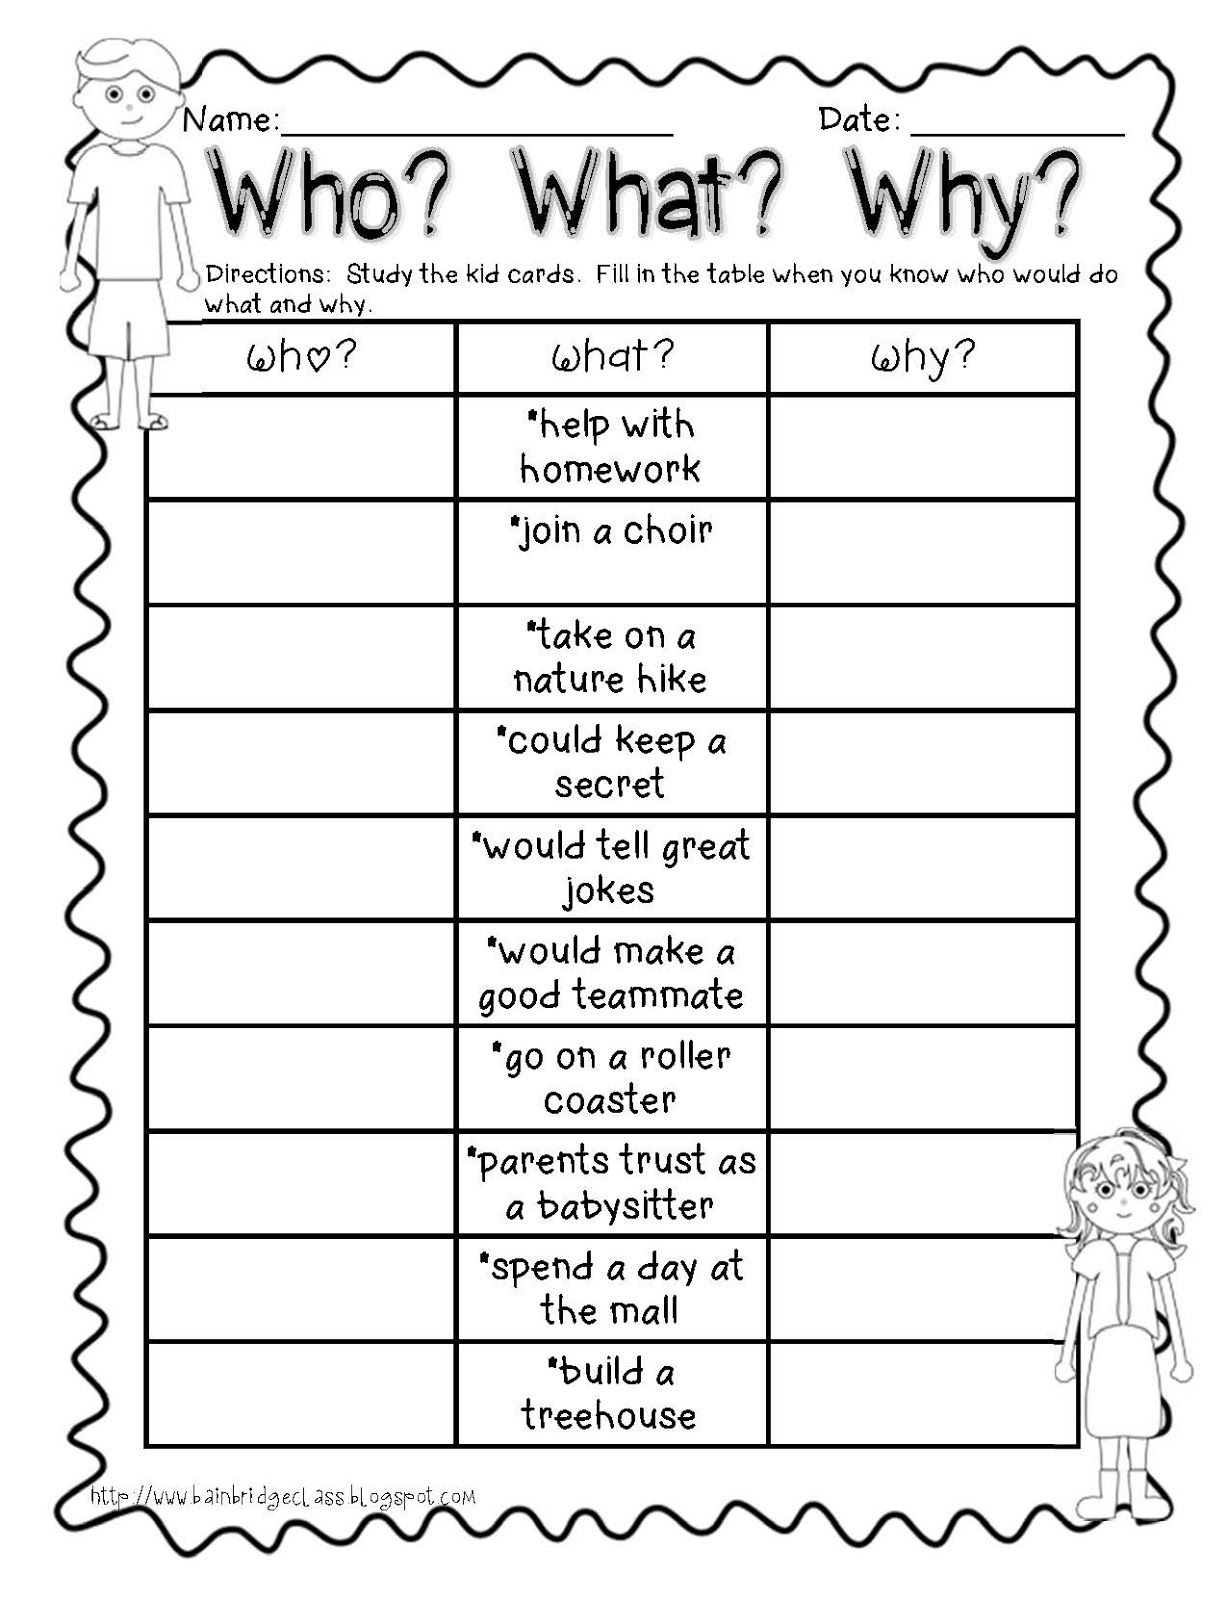 Character Traits Pack Page 59 1 227 1 600 Pixels